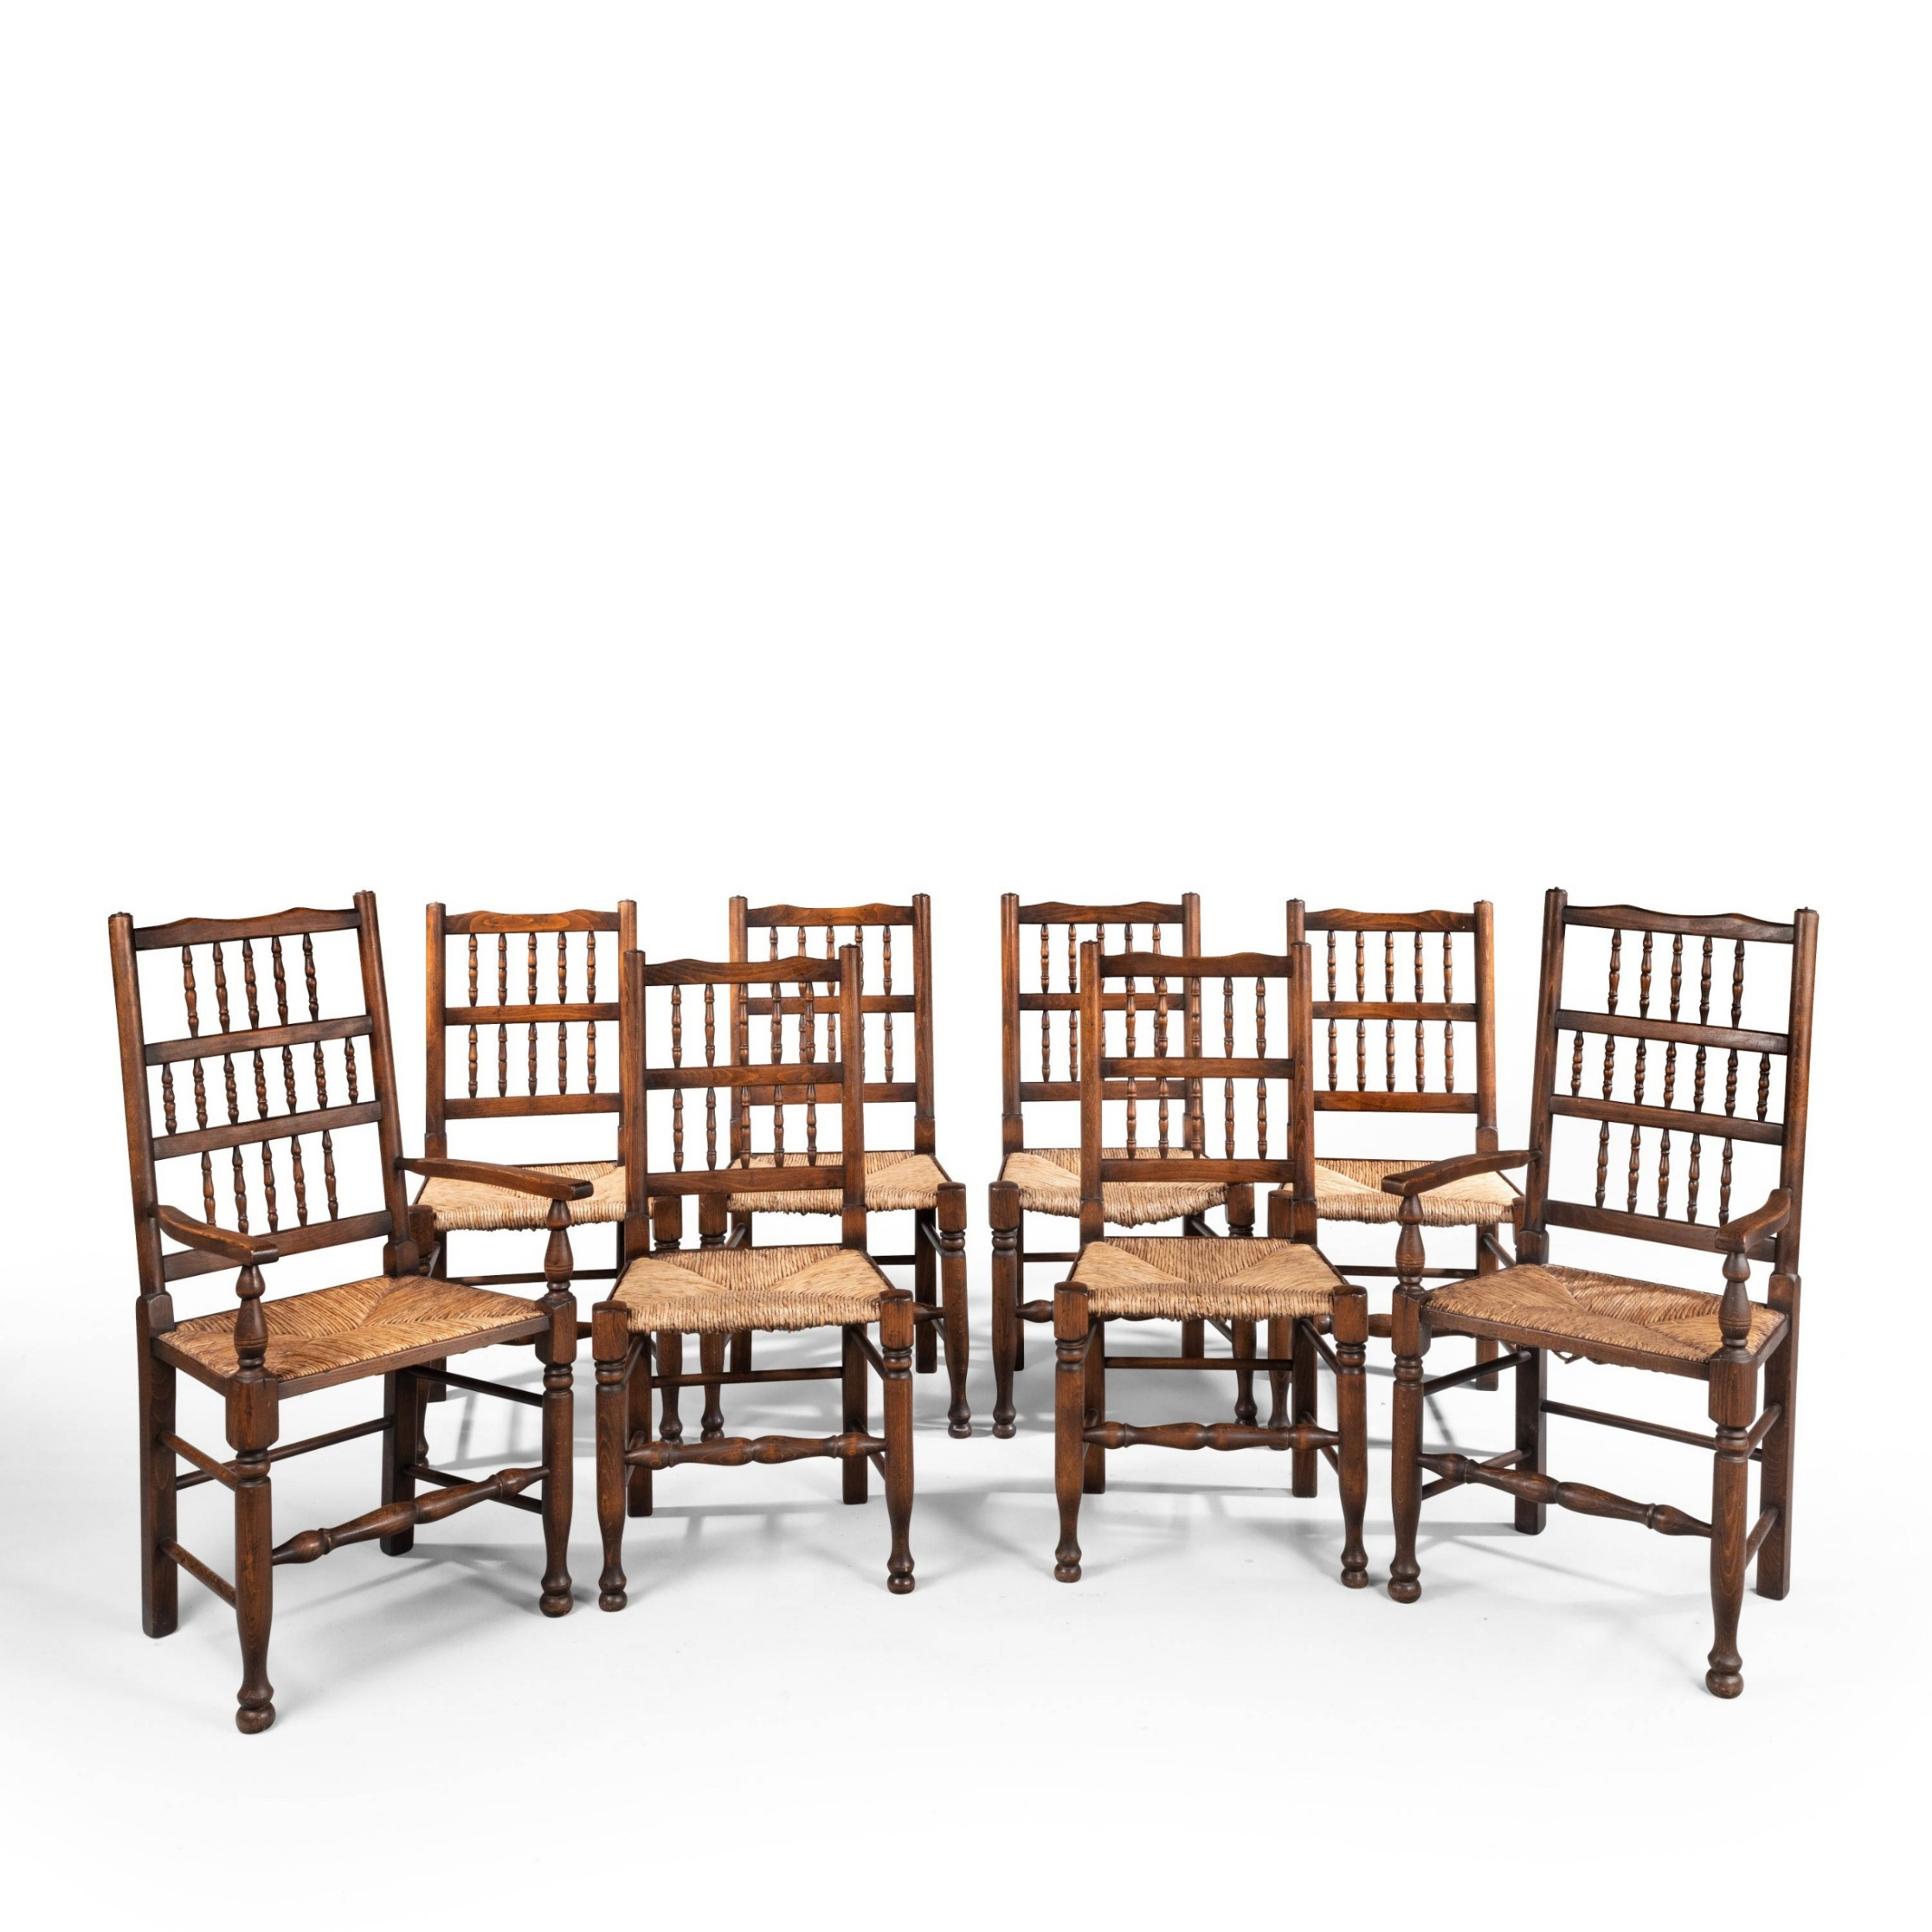 a very good set of 8 62 early 20th century stickbacked country chairs